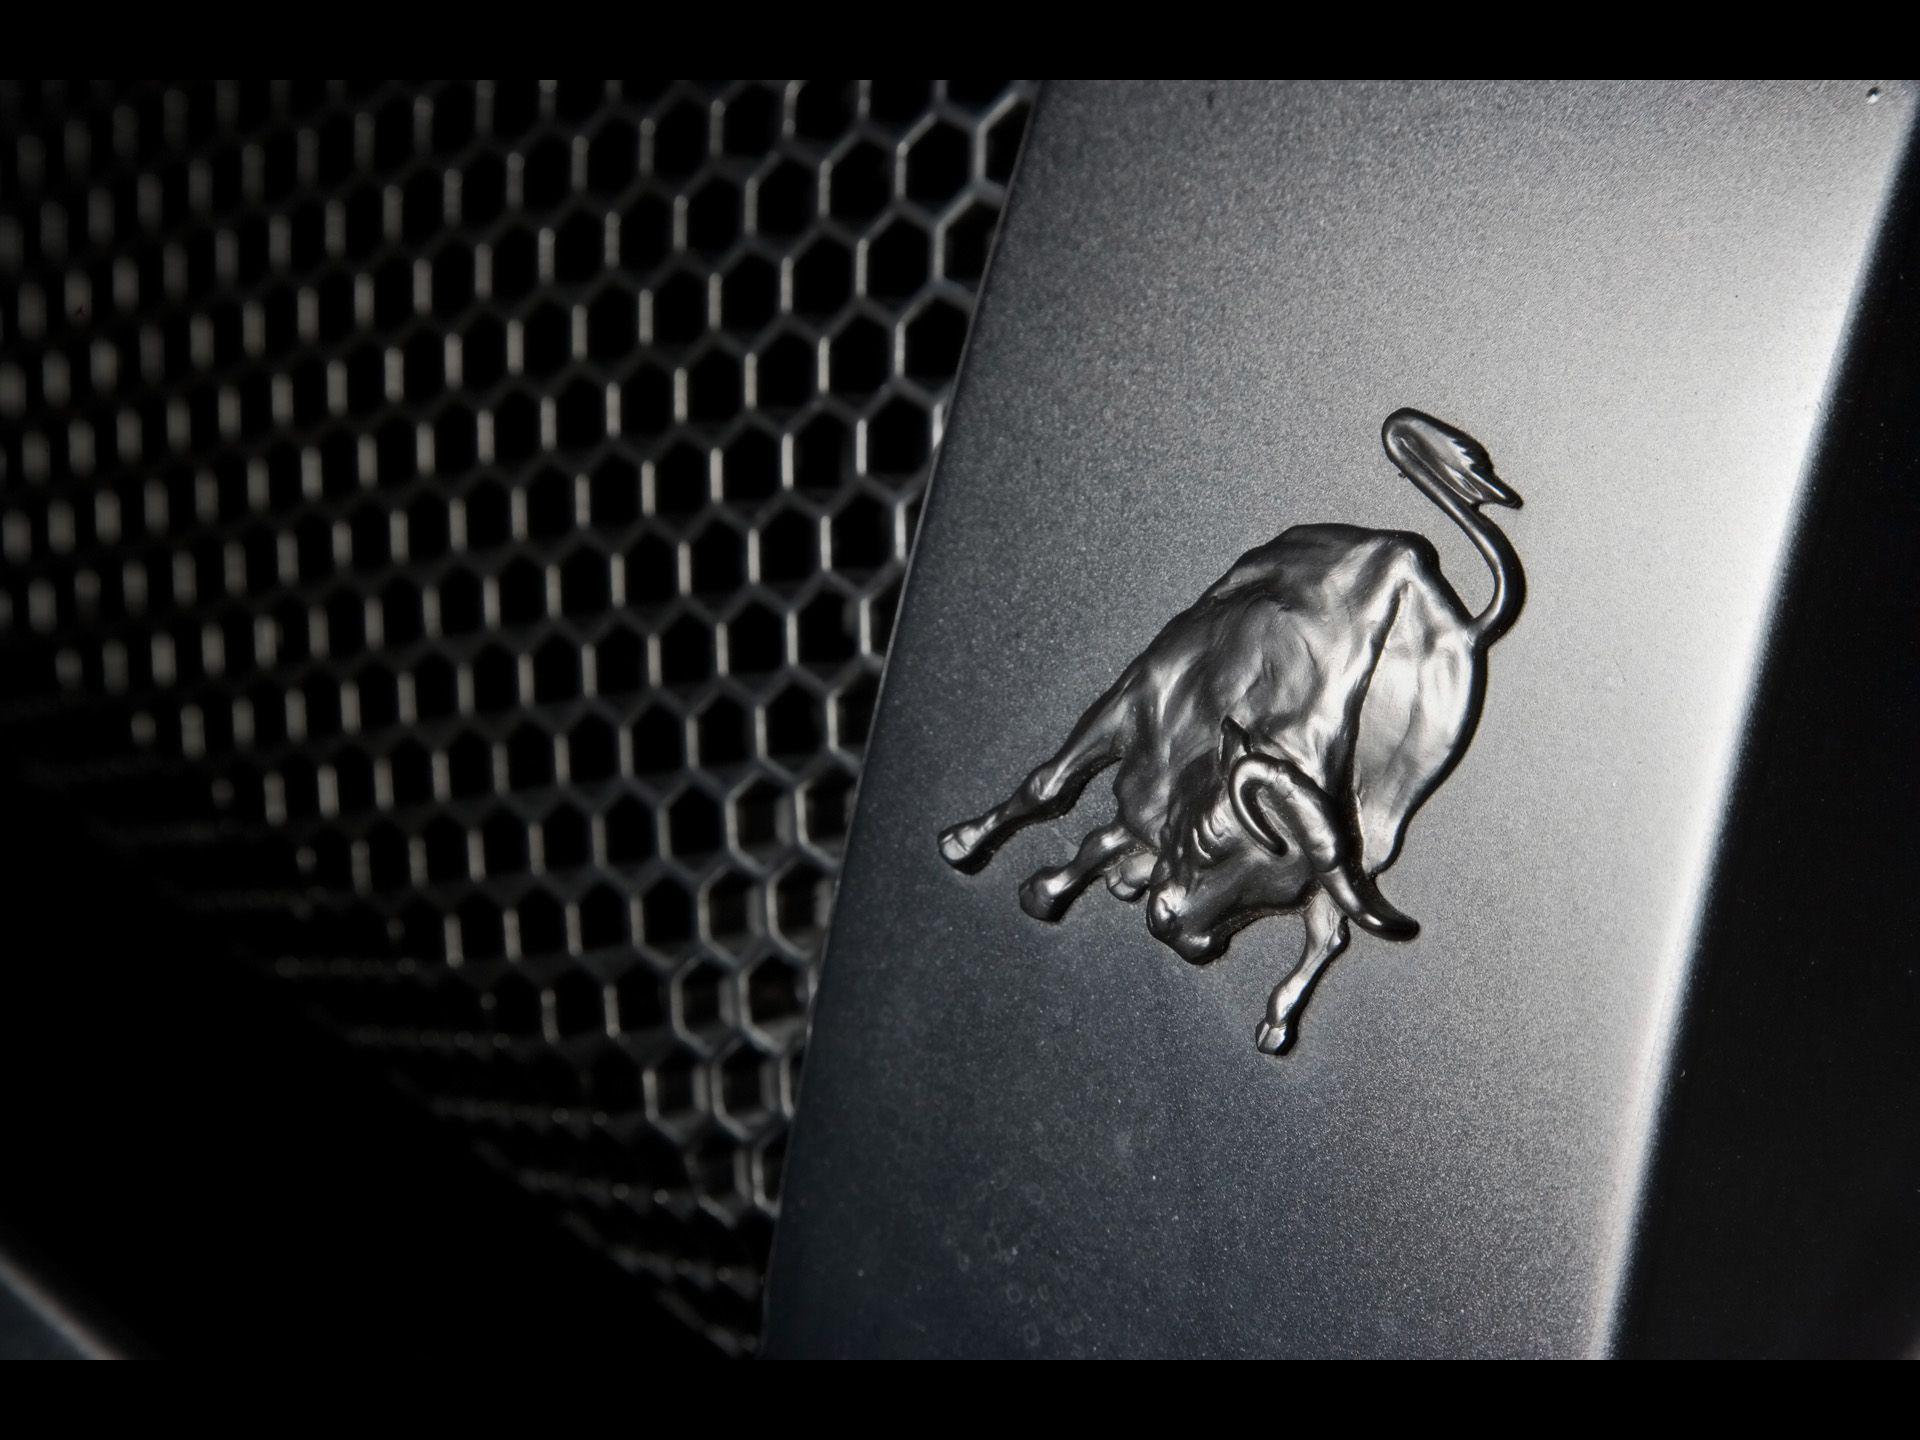 Wallpapers For Lamborghini Bull Logo Wallpaper